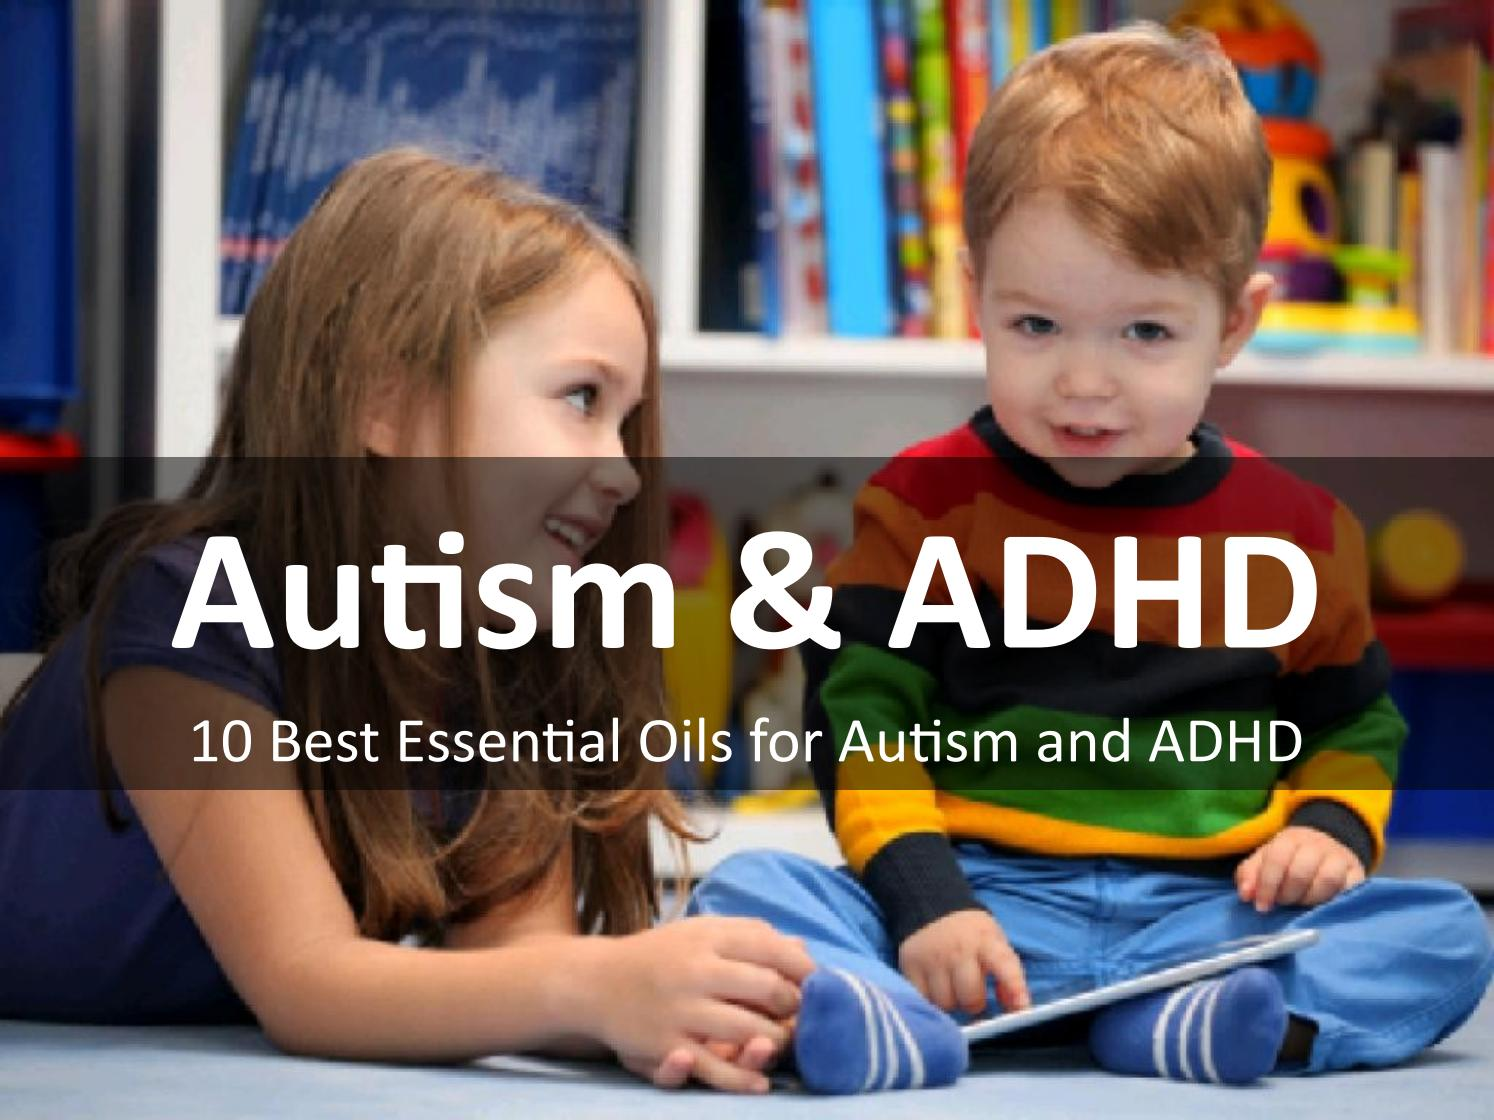 10 Best Essential Oils For Autism And Adhd By Autism Issuu